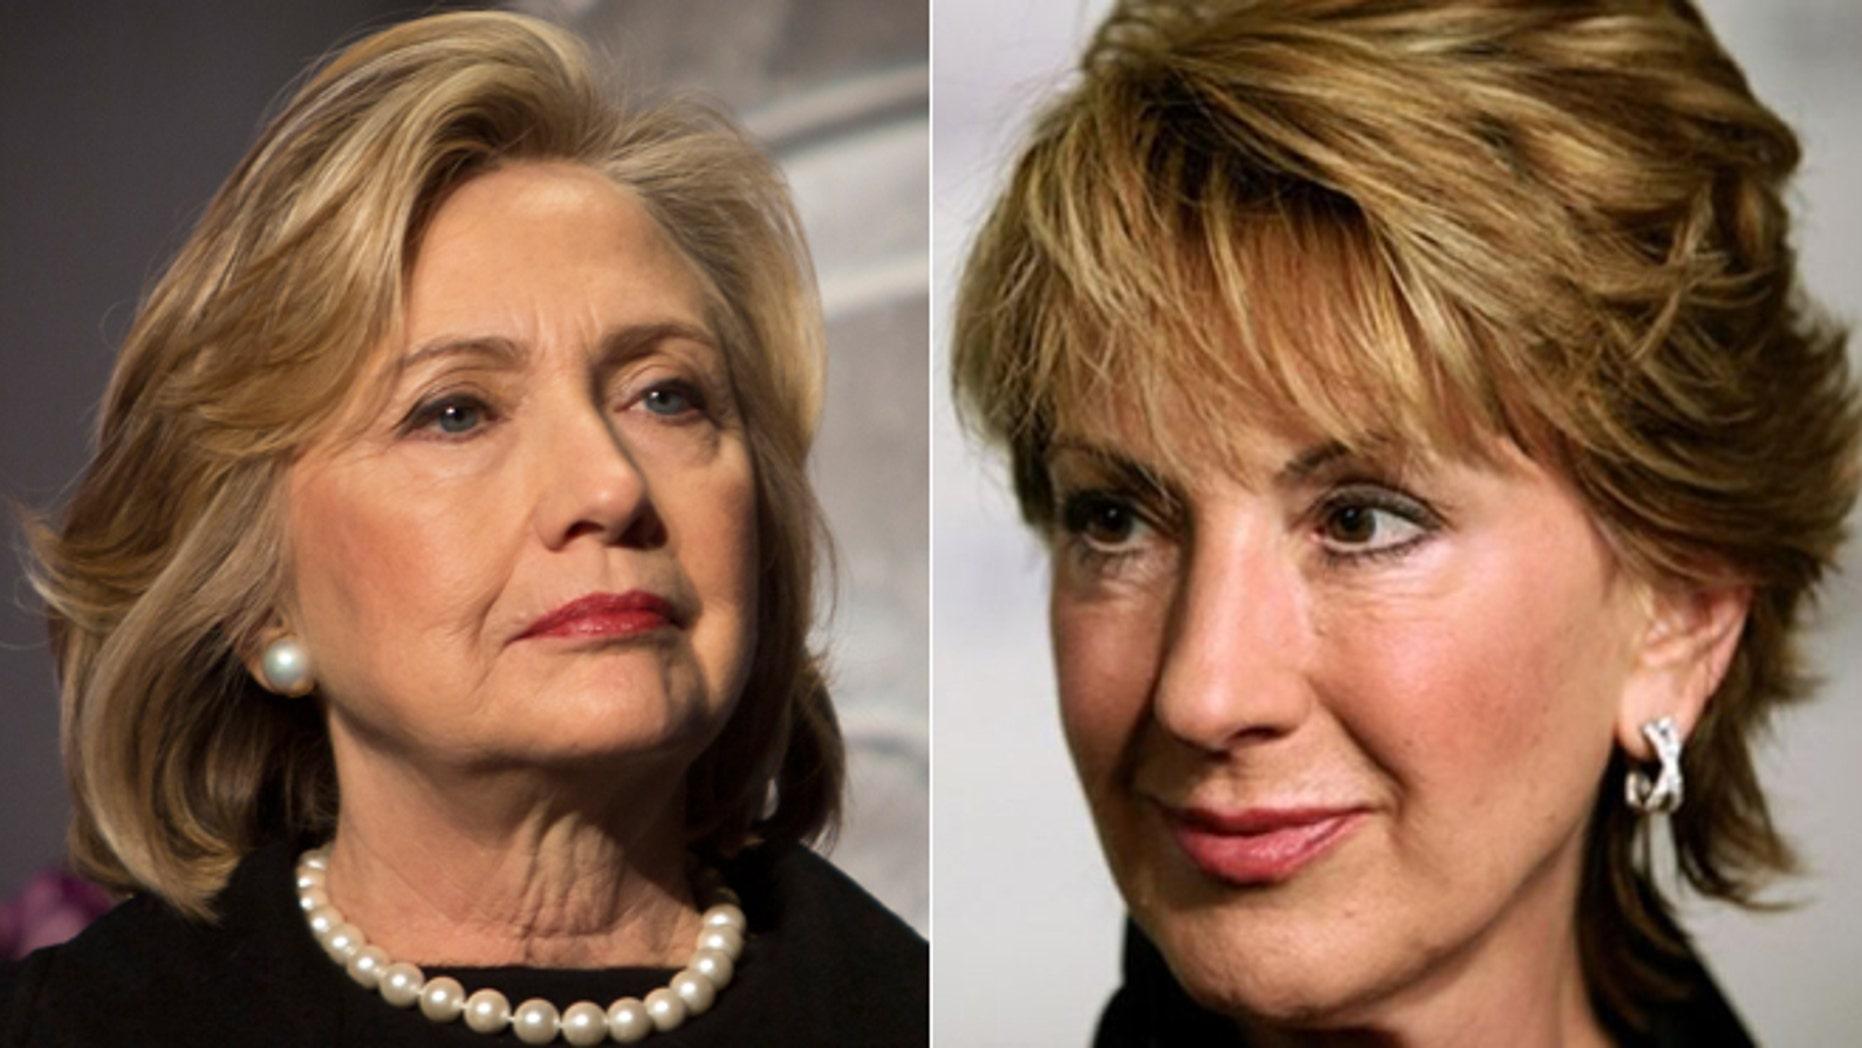 Hillary Rodham Clinton is seen in New York (left) and former Hewlett-Packard CEO Carly Fiorina (right).